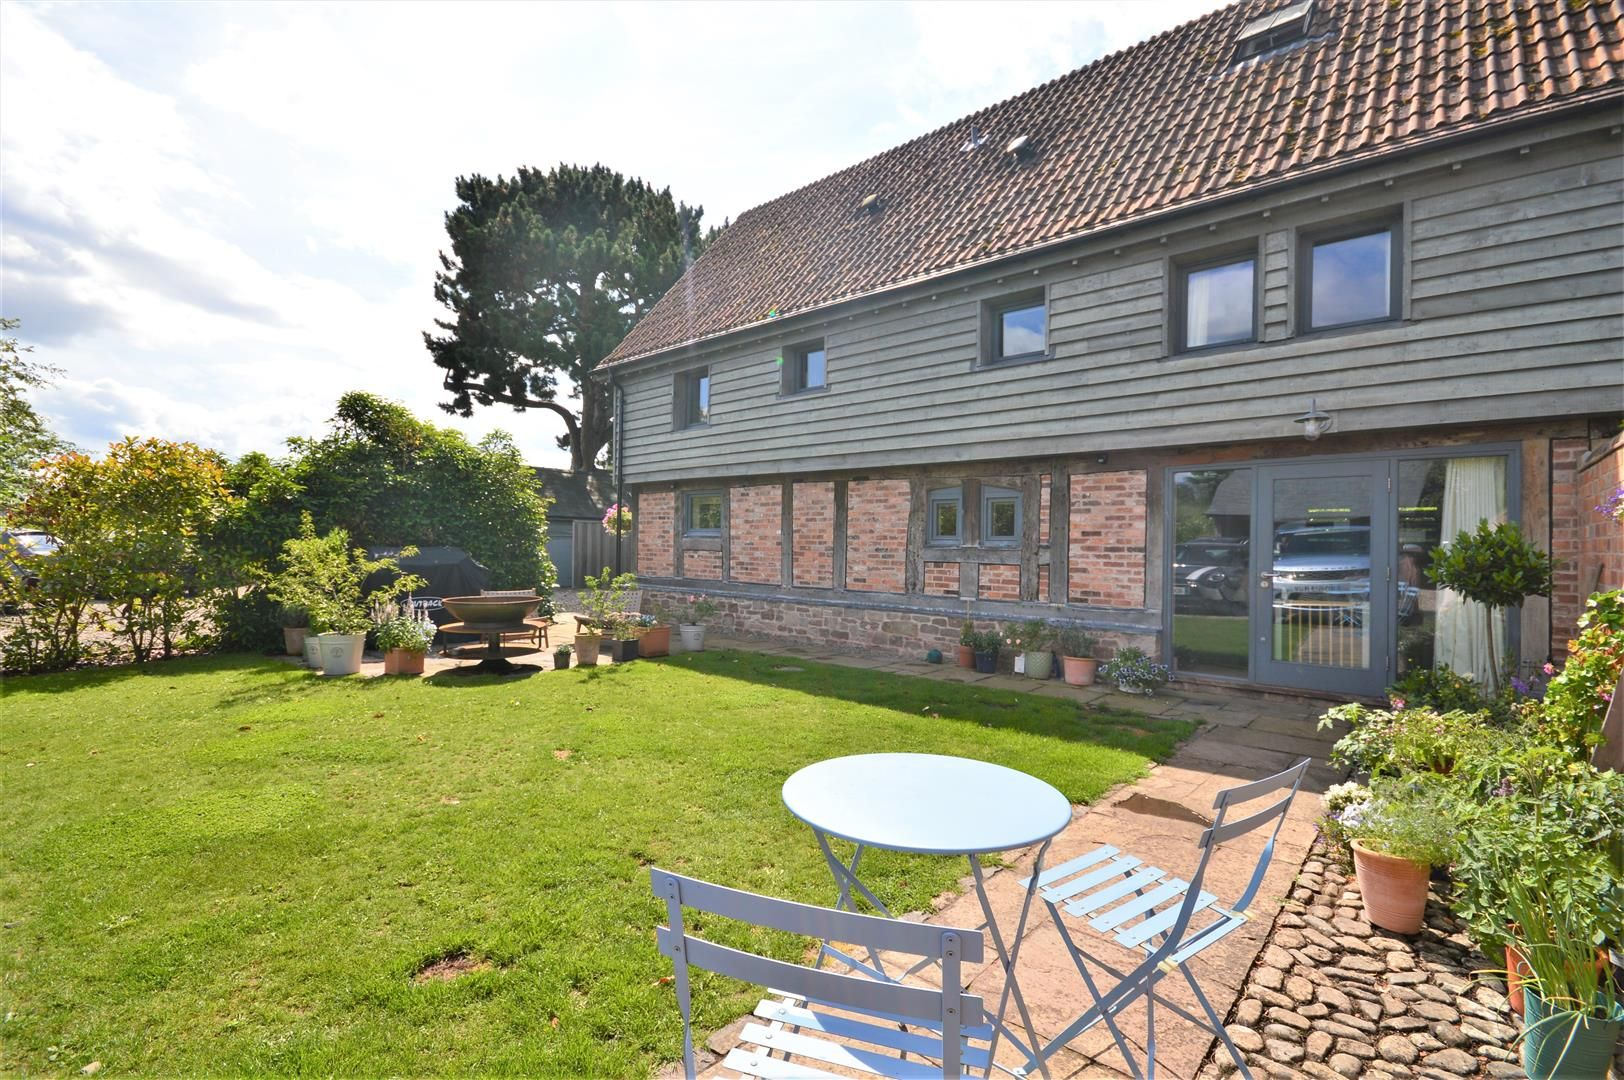 4 bed barn conversion for sale in Lower Breinton, HR4